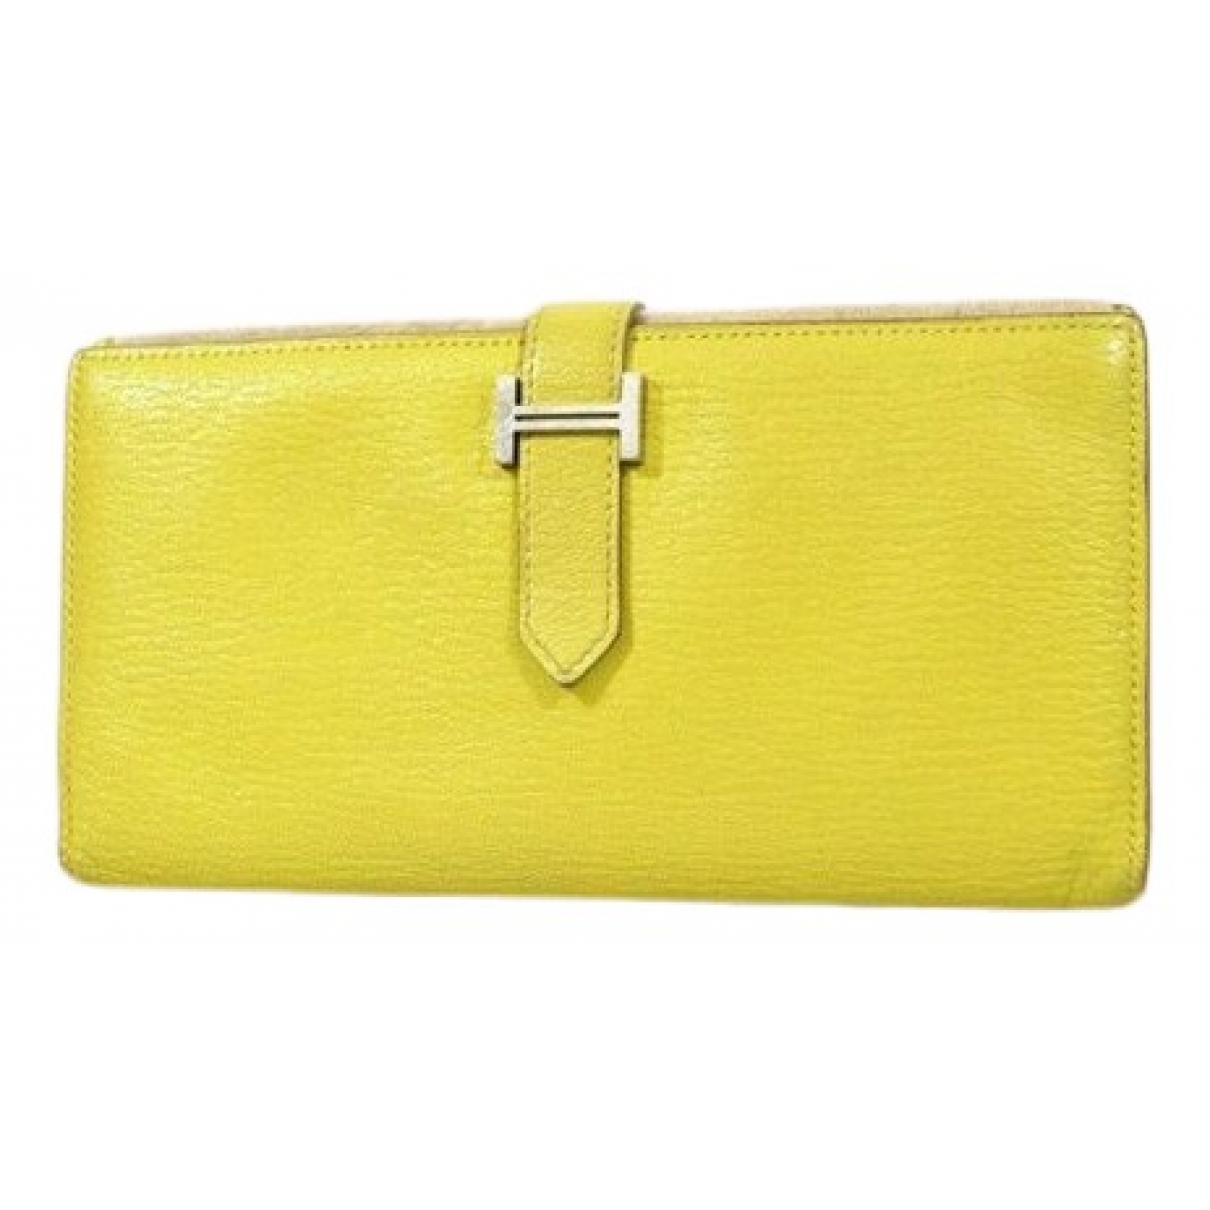 Hermès Béarn Yellow Leather wallet for Women \N